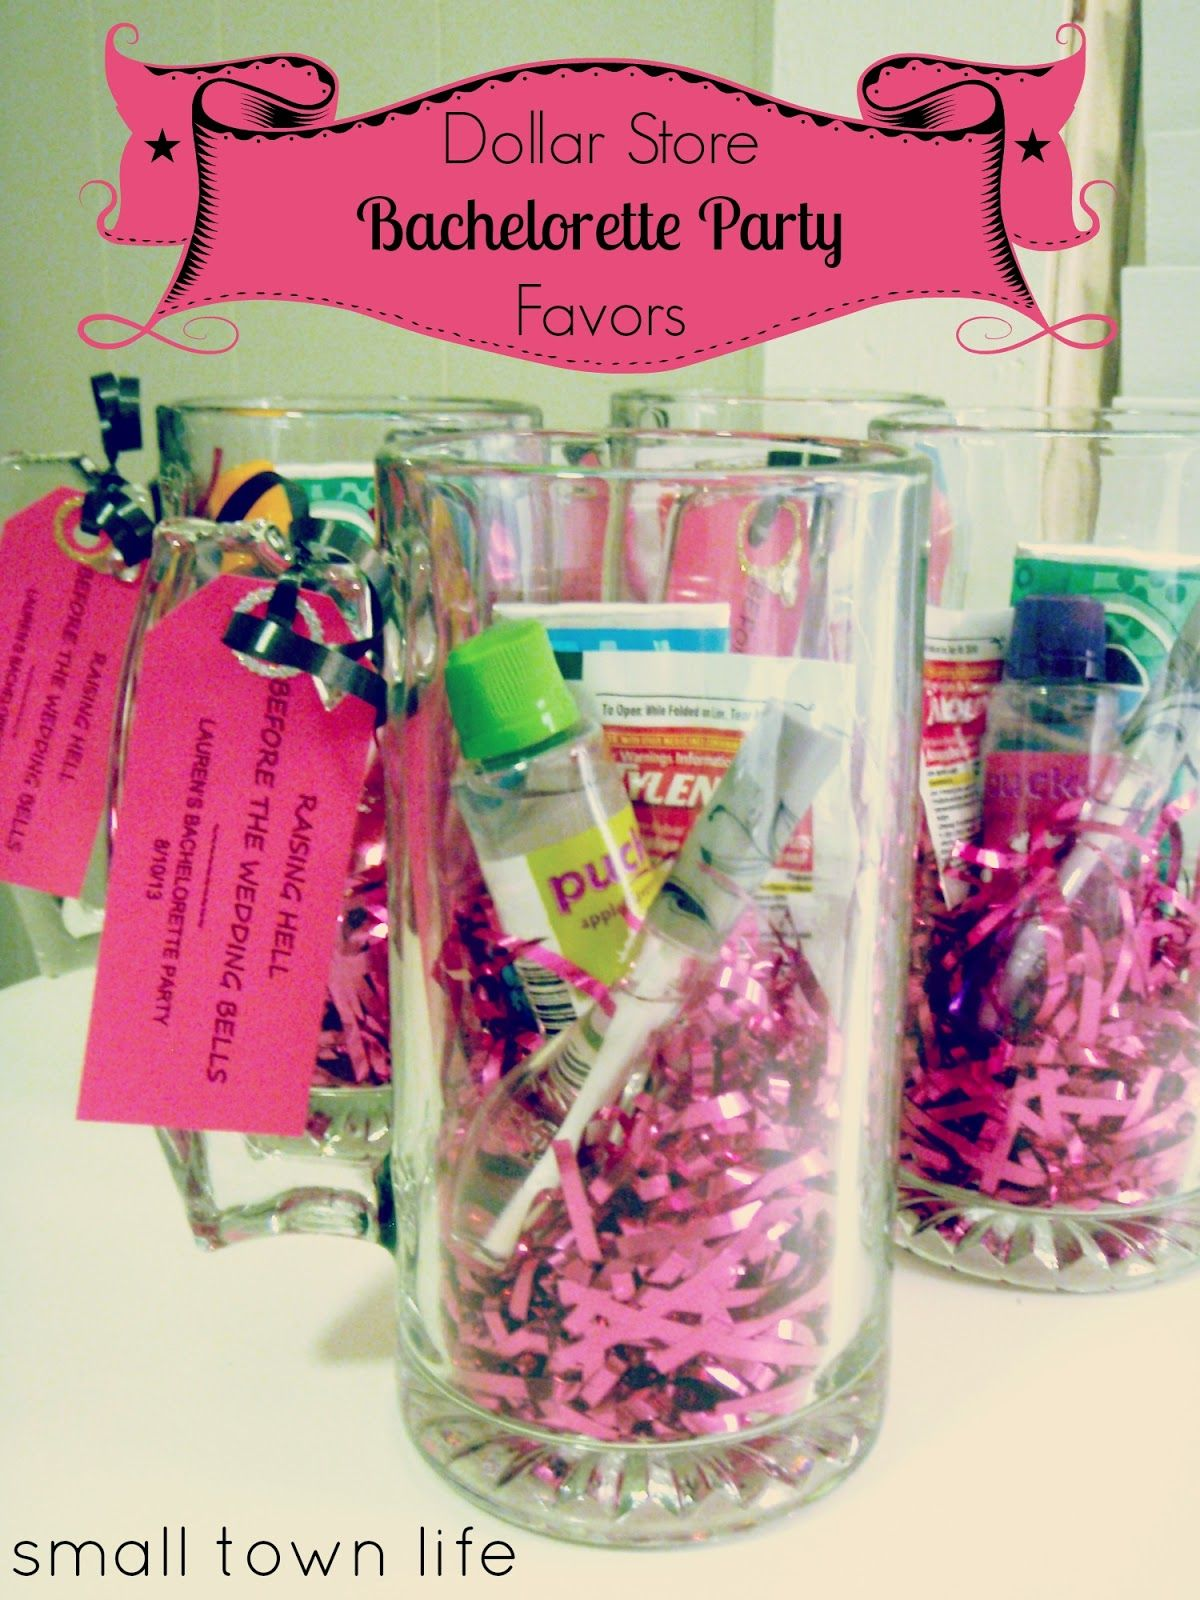 dollar store bachelorette party favors | Bridal/Batchelorette party ...